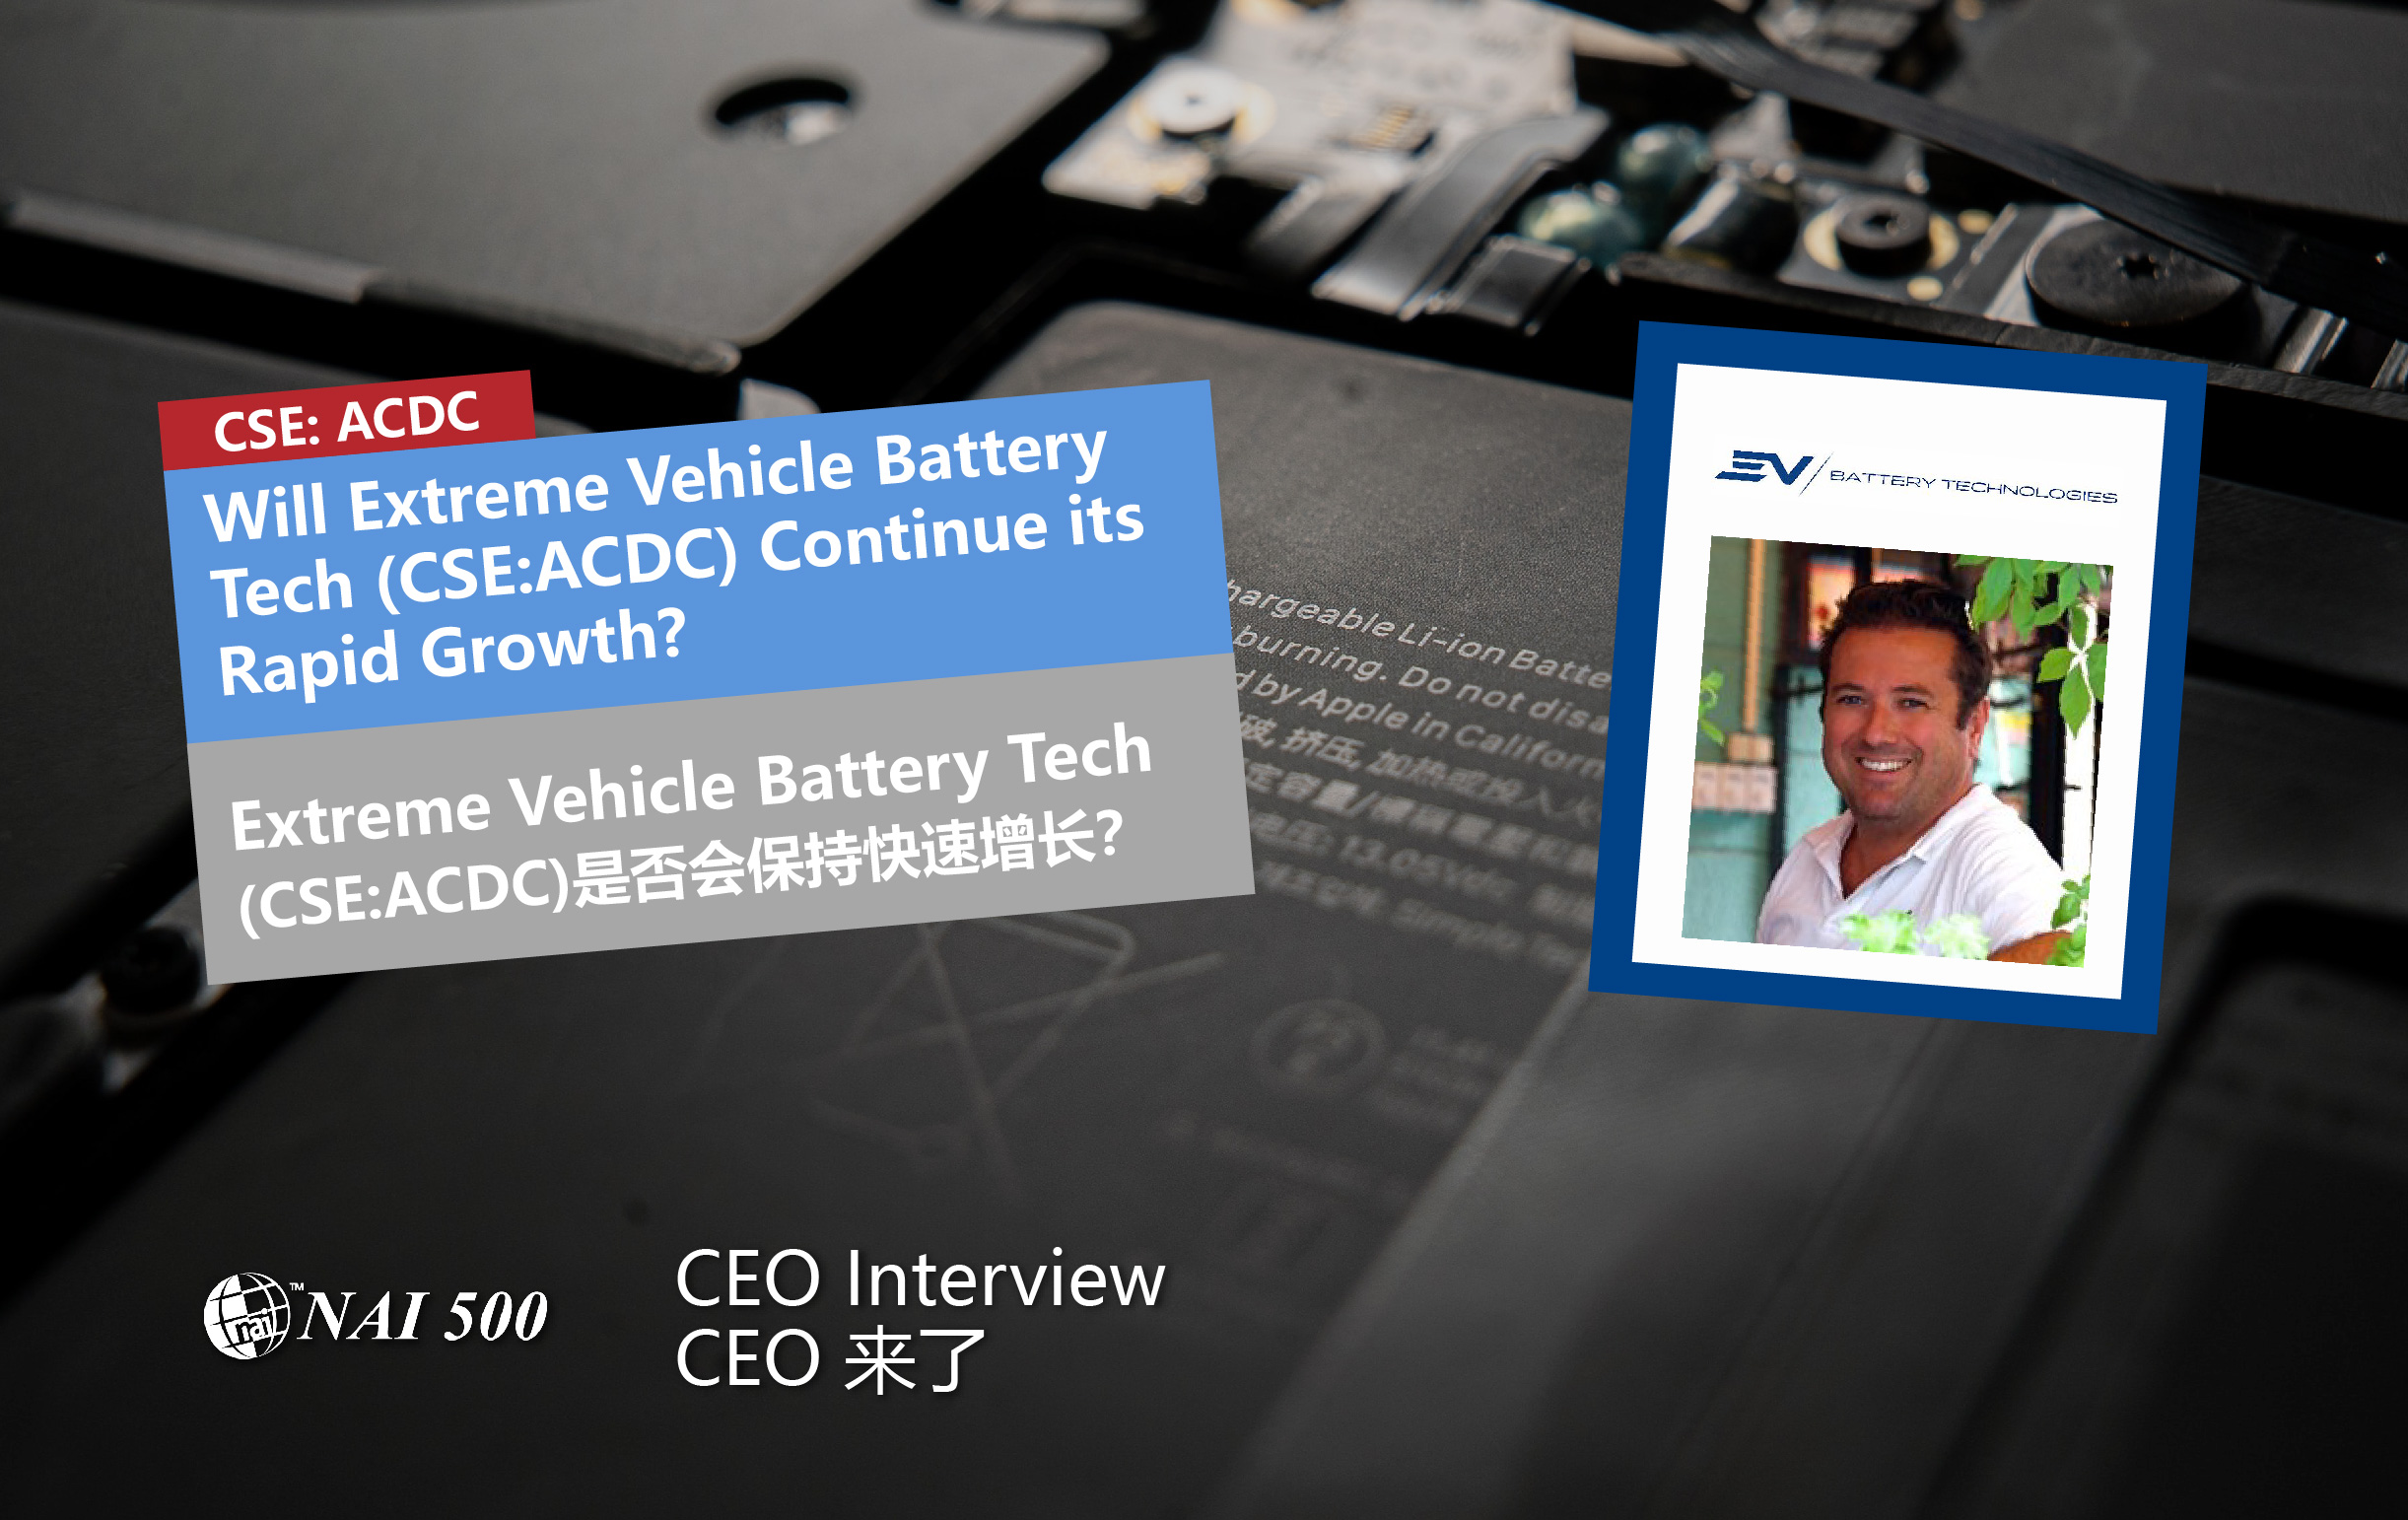 Extreme Vehicle Battery Tech